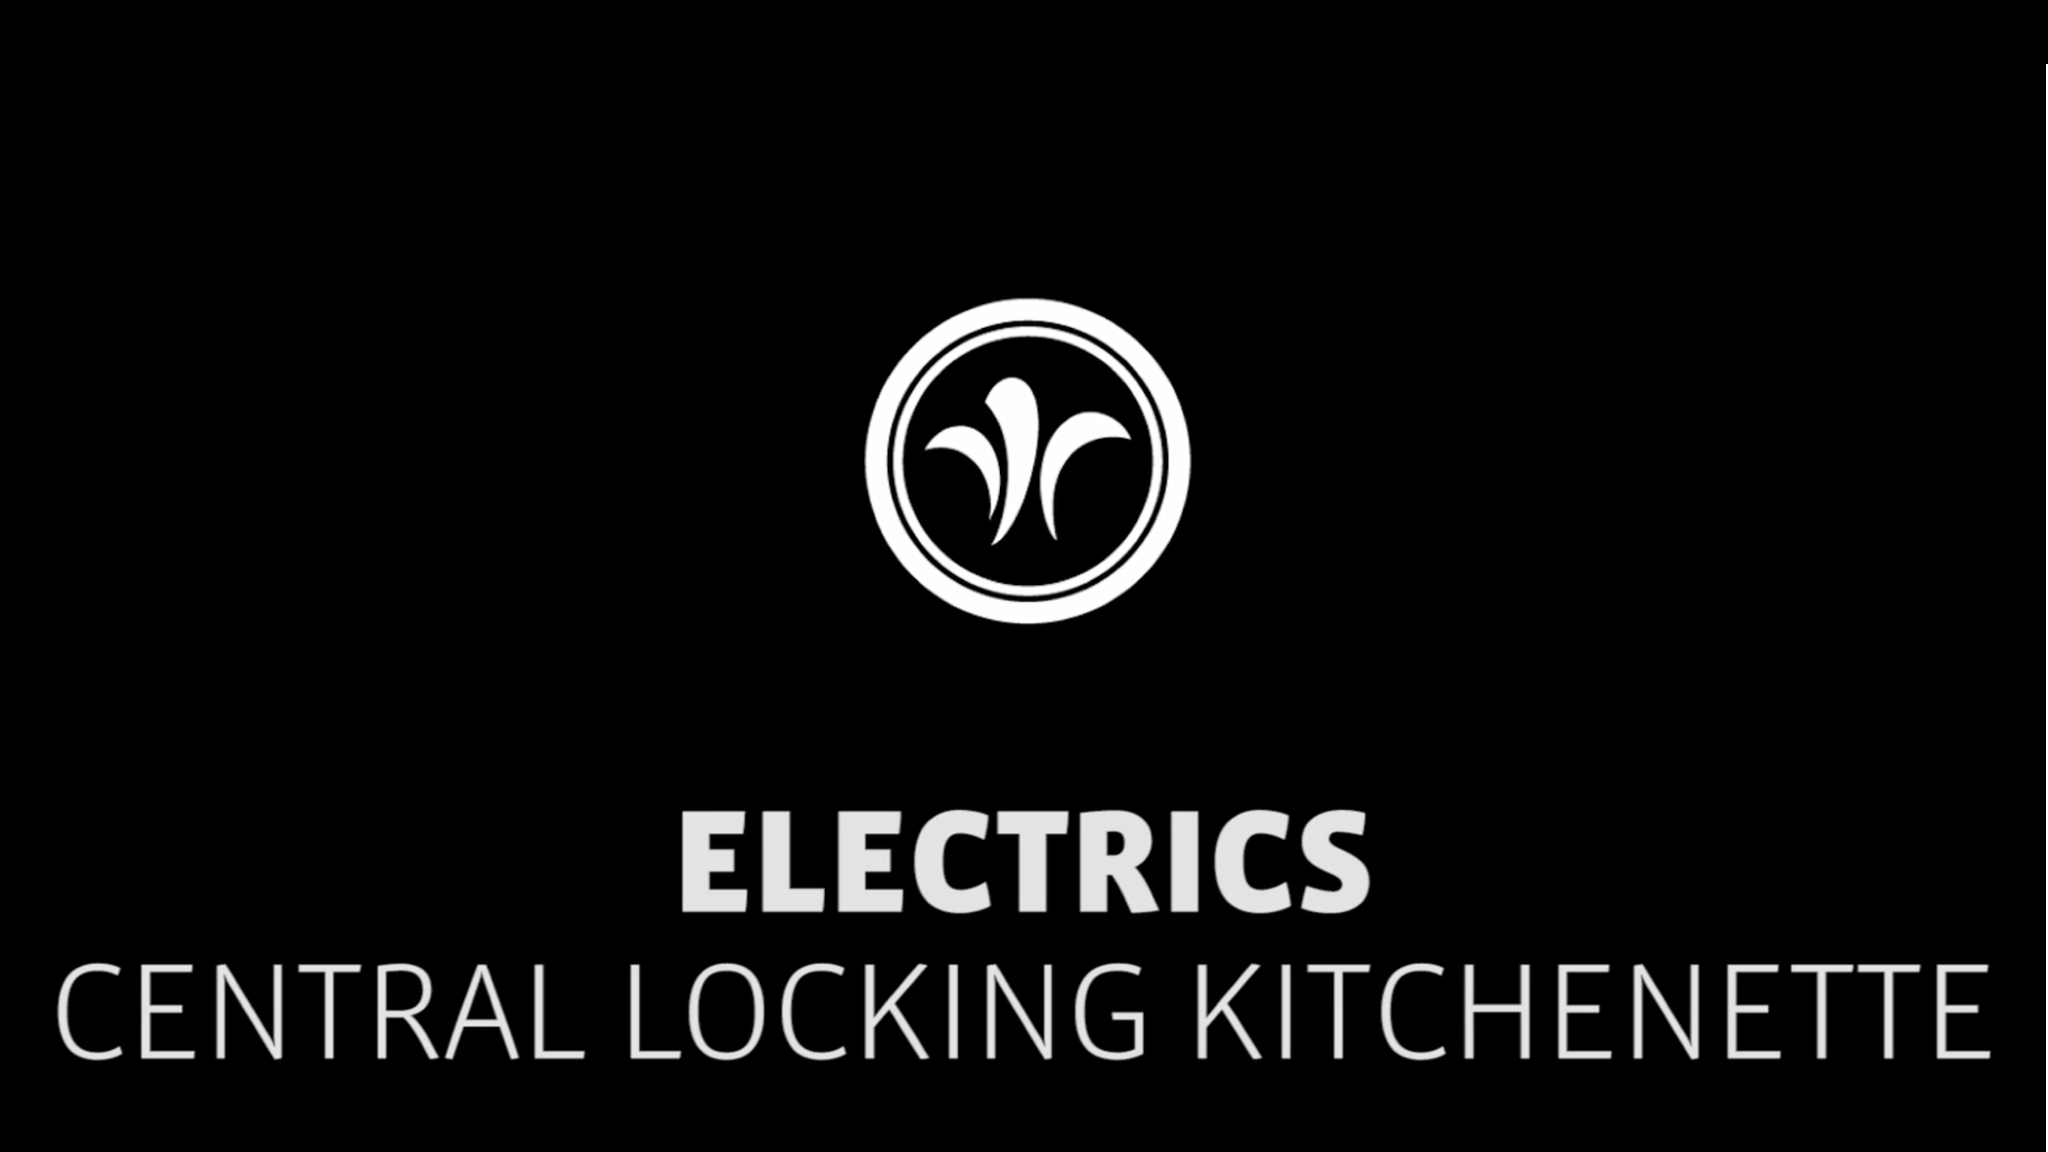 motorhome central lock kitchen // niesmann+bischoff - luxury motorhome (model FLAIR) // 2019 // EL6